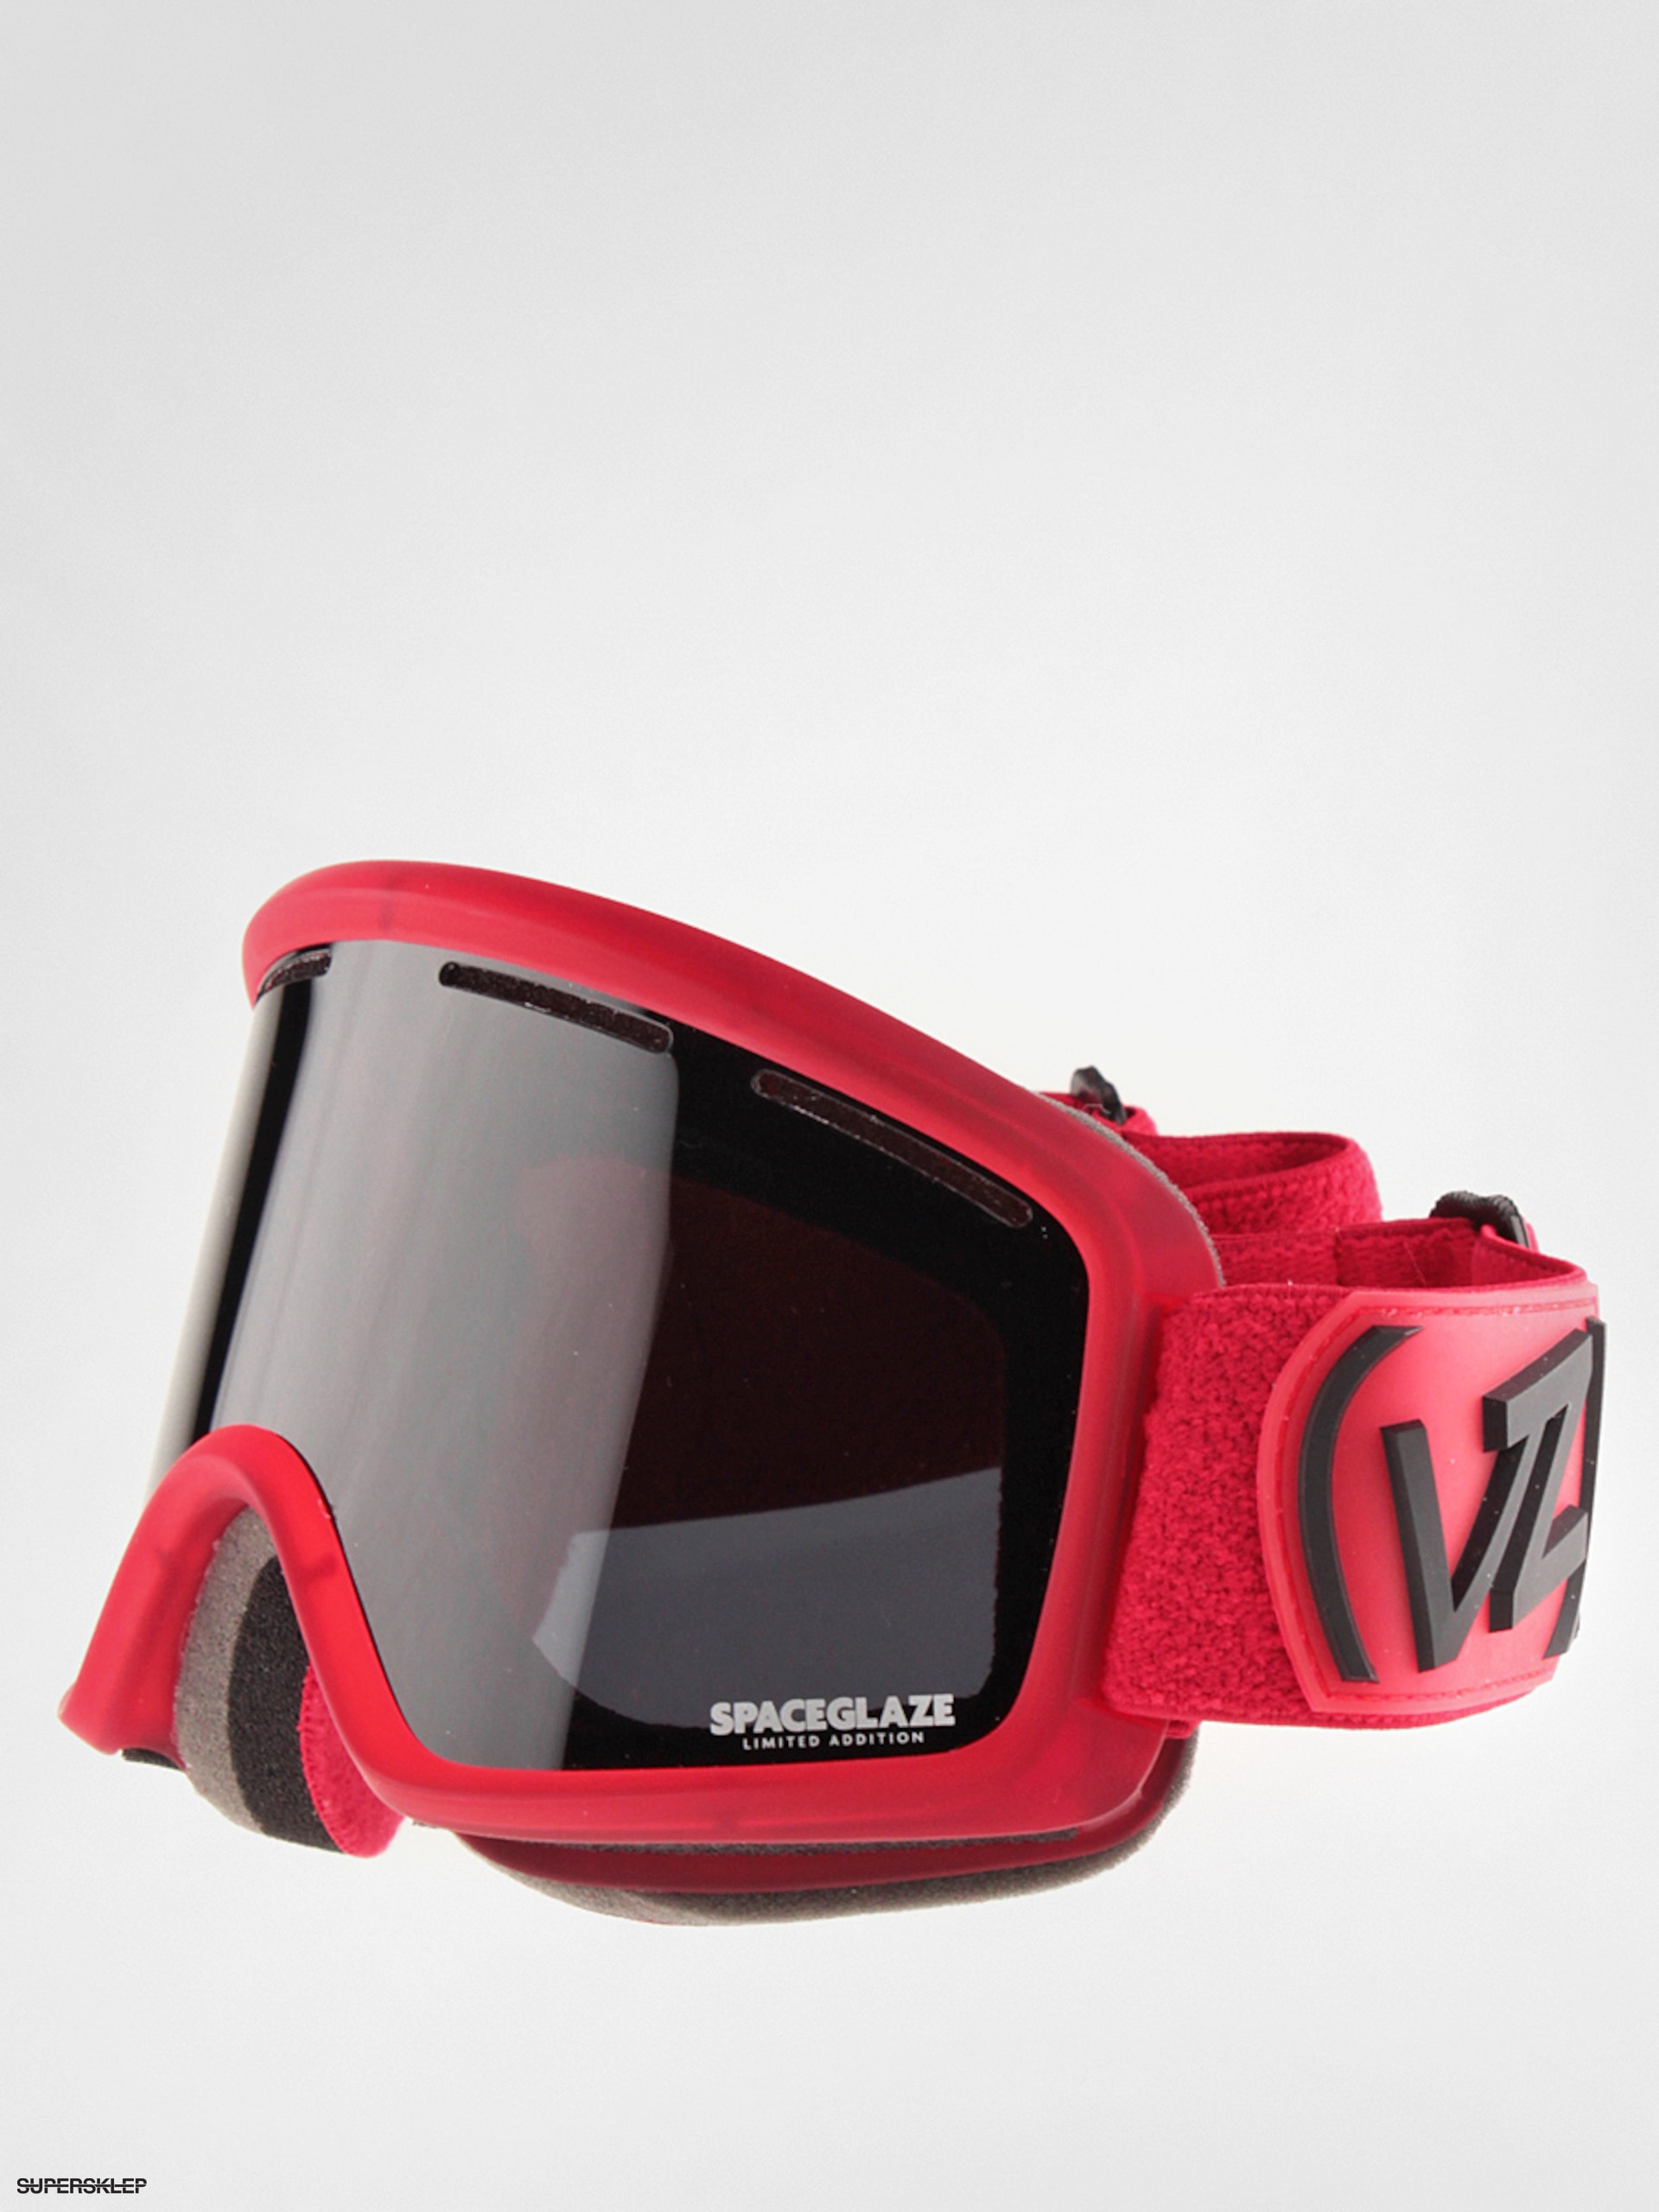 Brýle na snowboard Von Zipper Beefy (spaceglaze red/blackout)